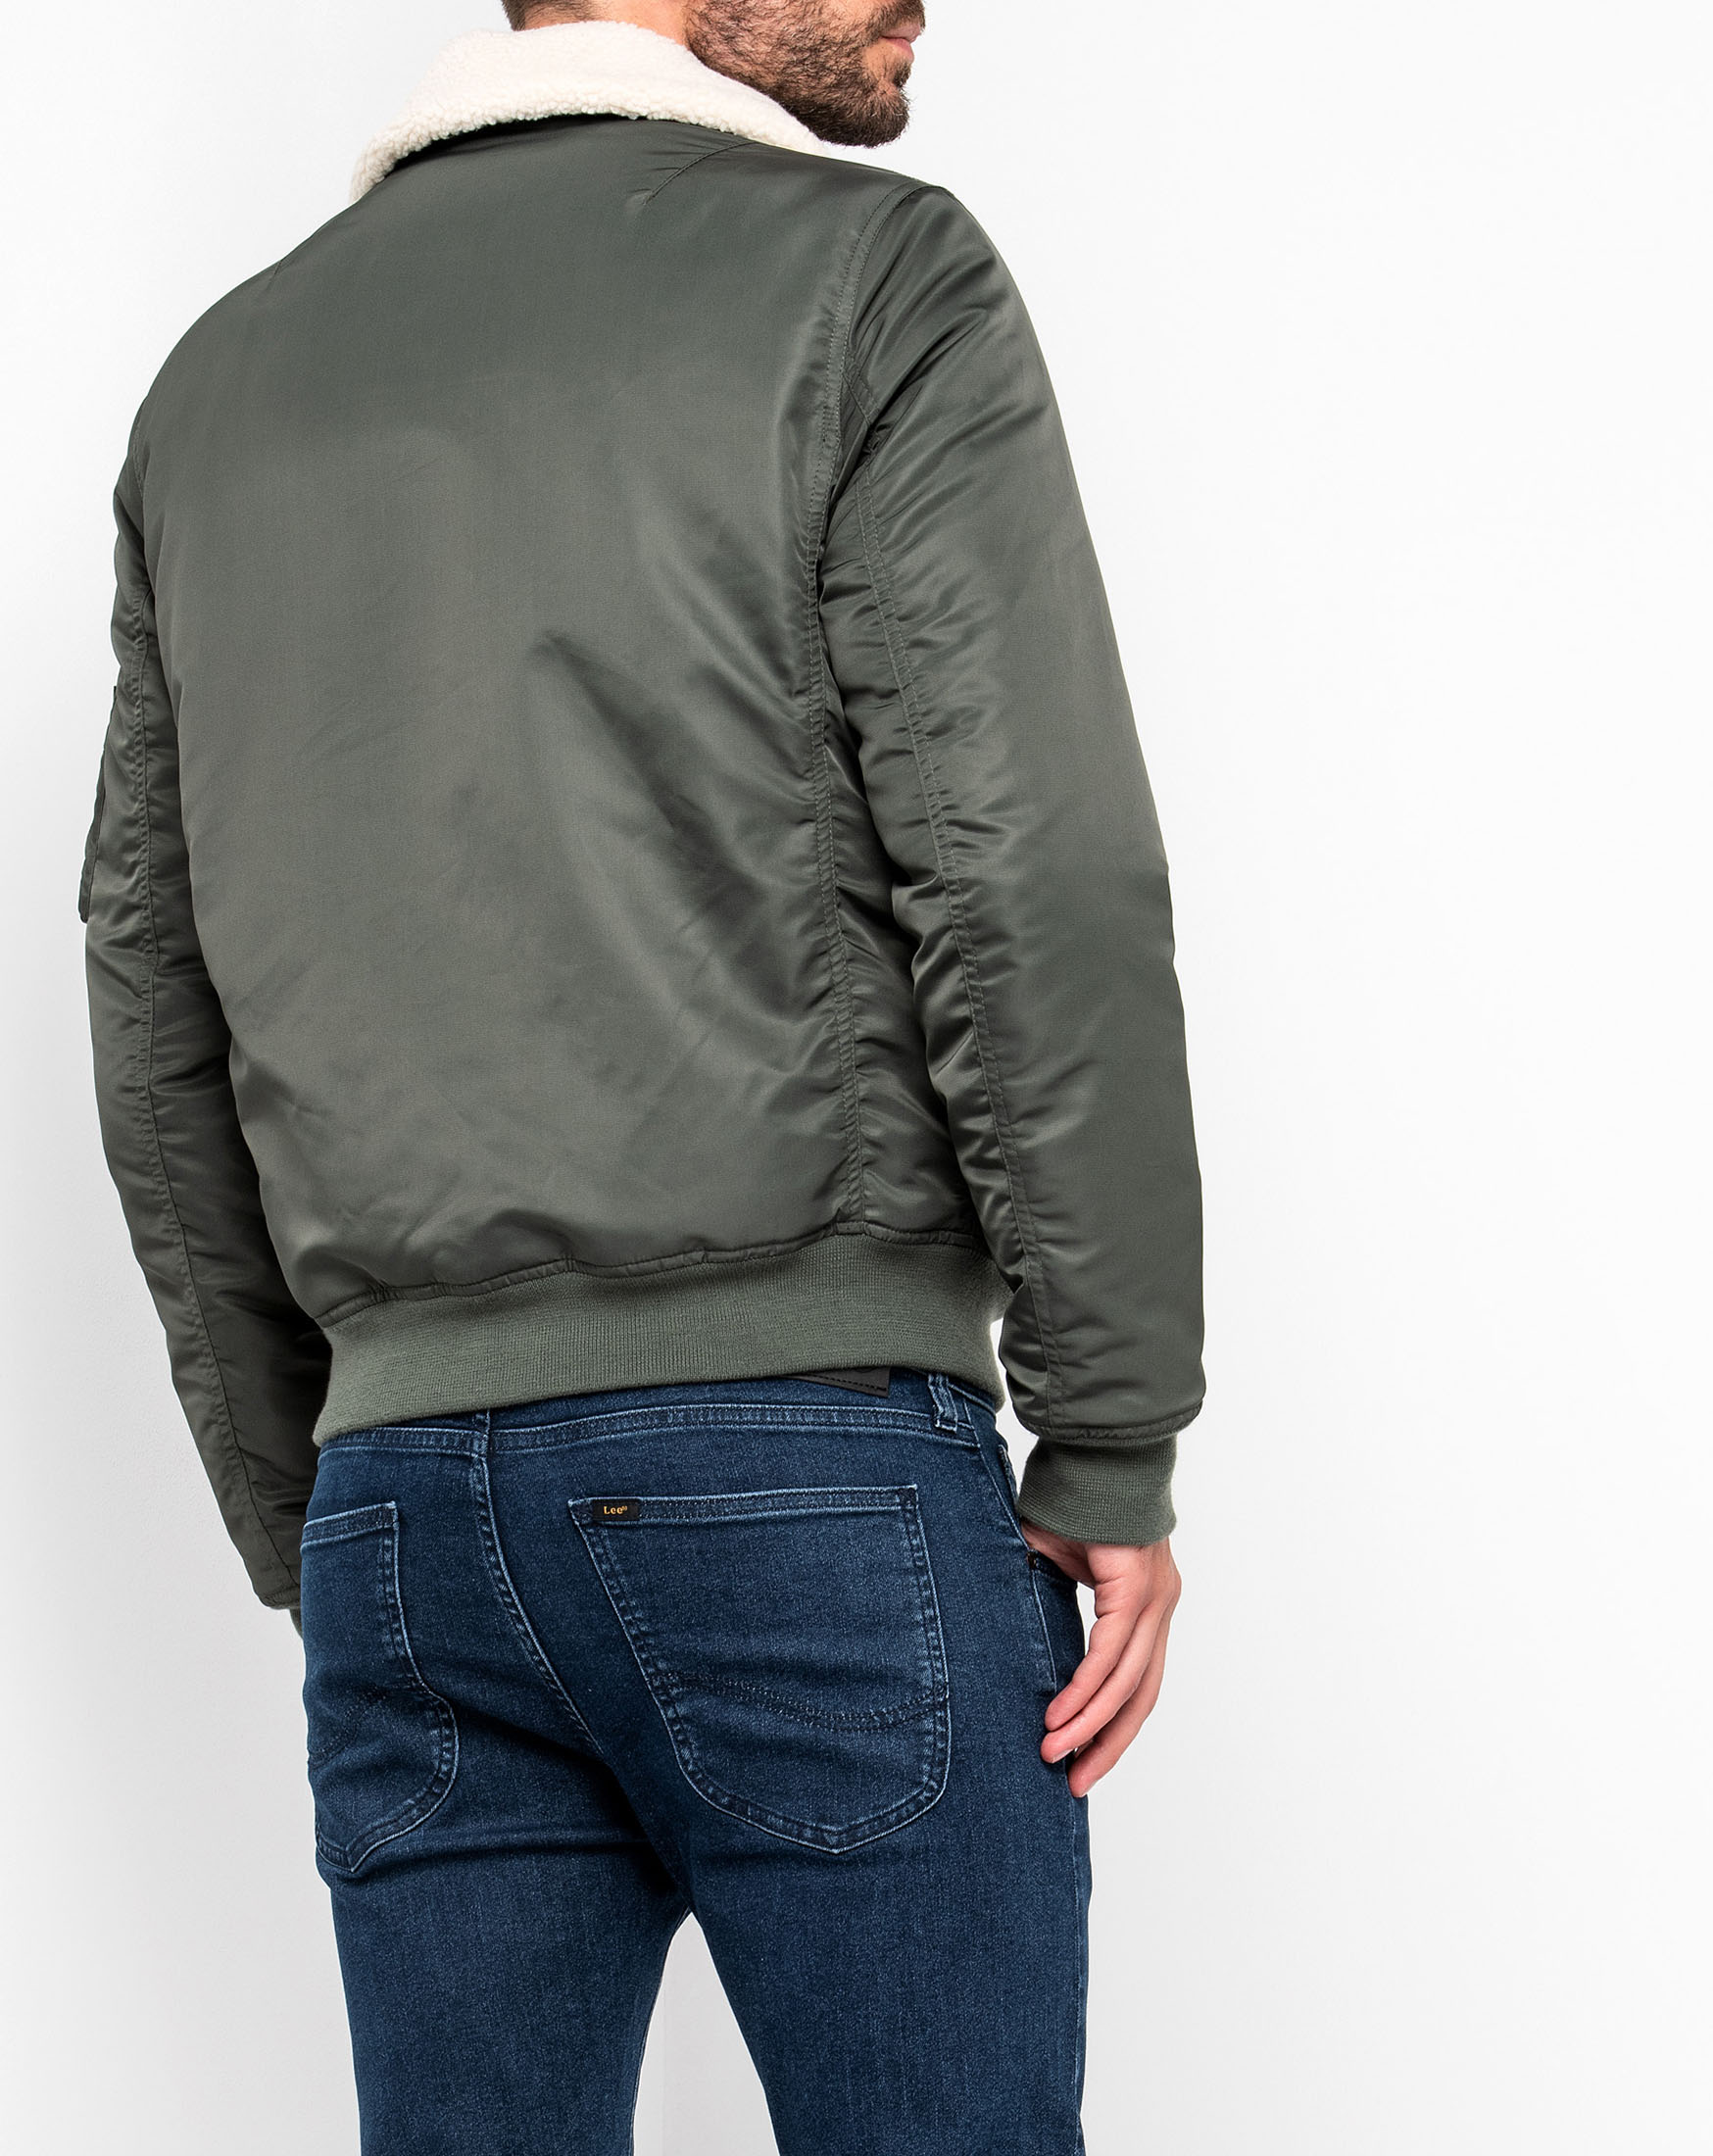 detail FLIGHT ZIP JACKET GREY GREEN